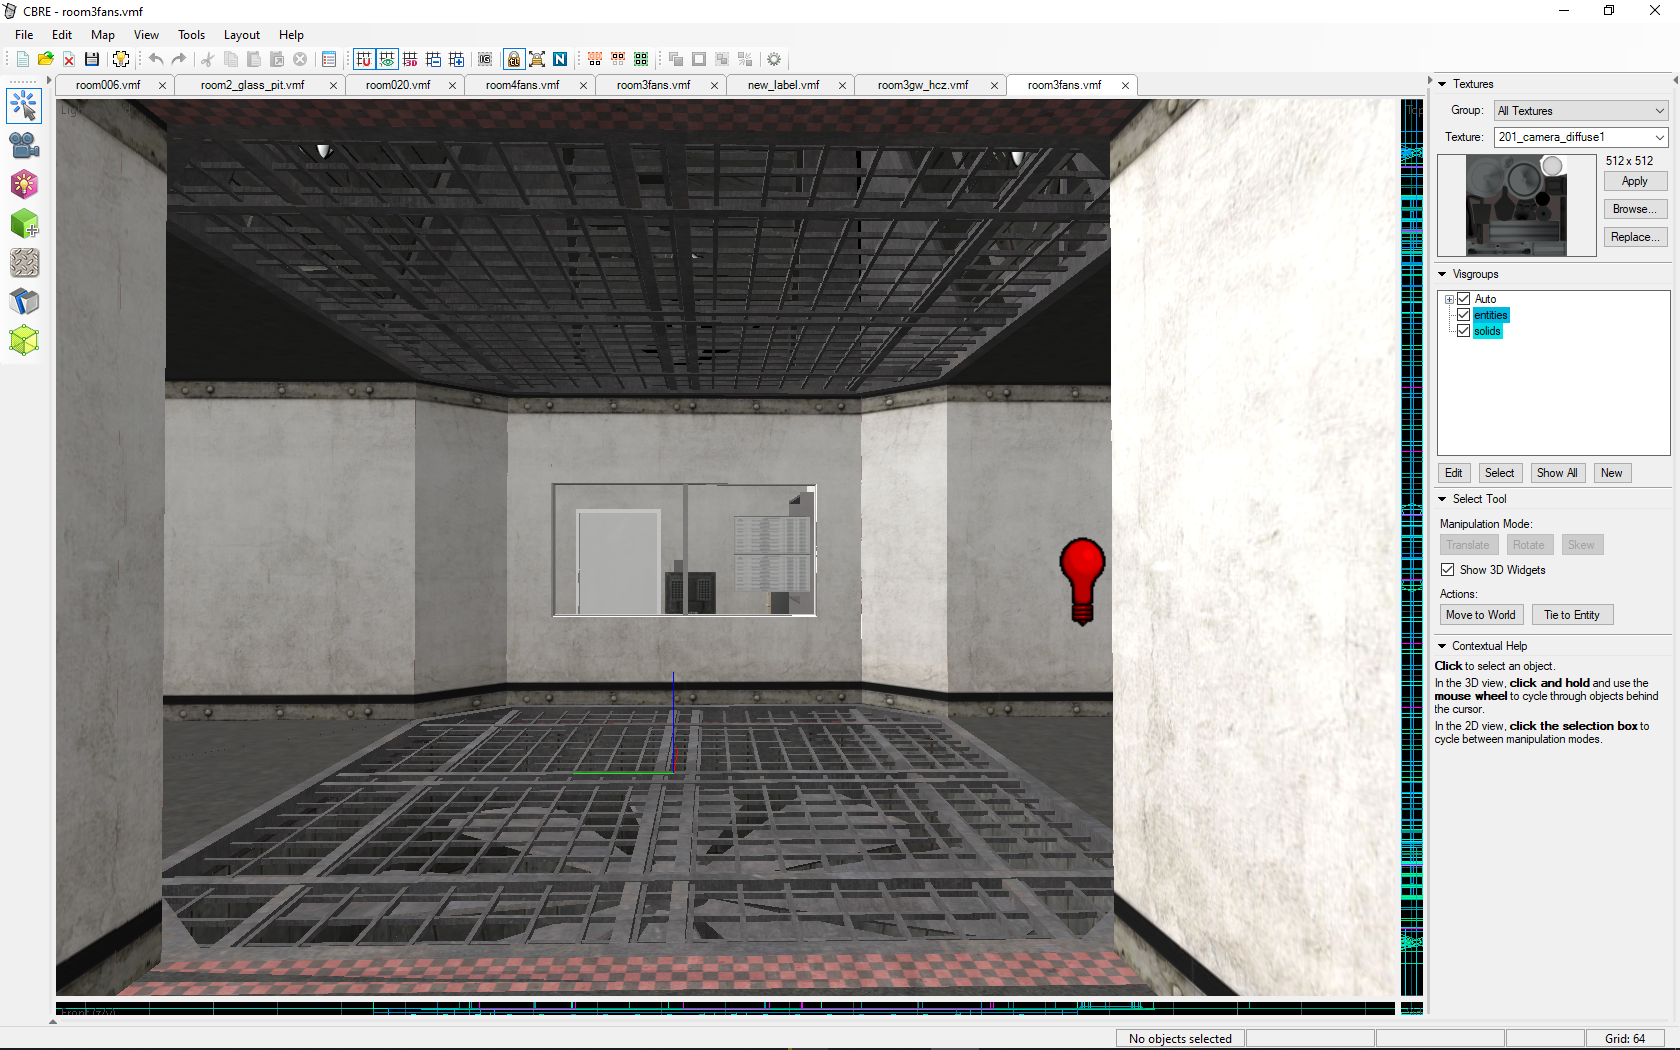 this is room3fans new room with a 2 massive fans in center and a window with a checkpoint at left wall